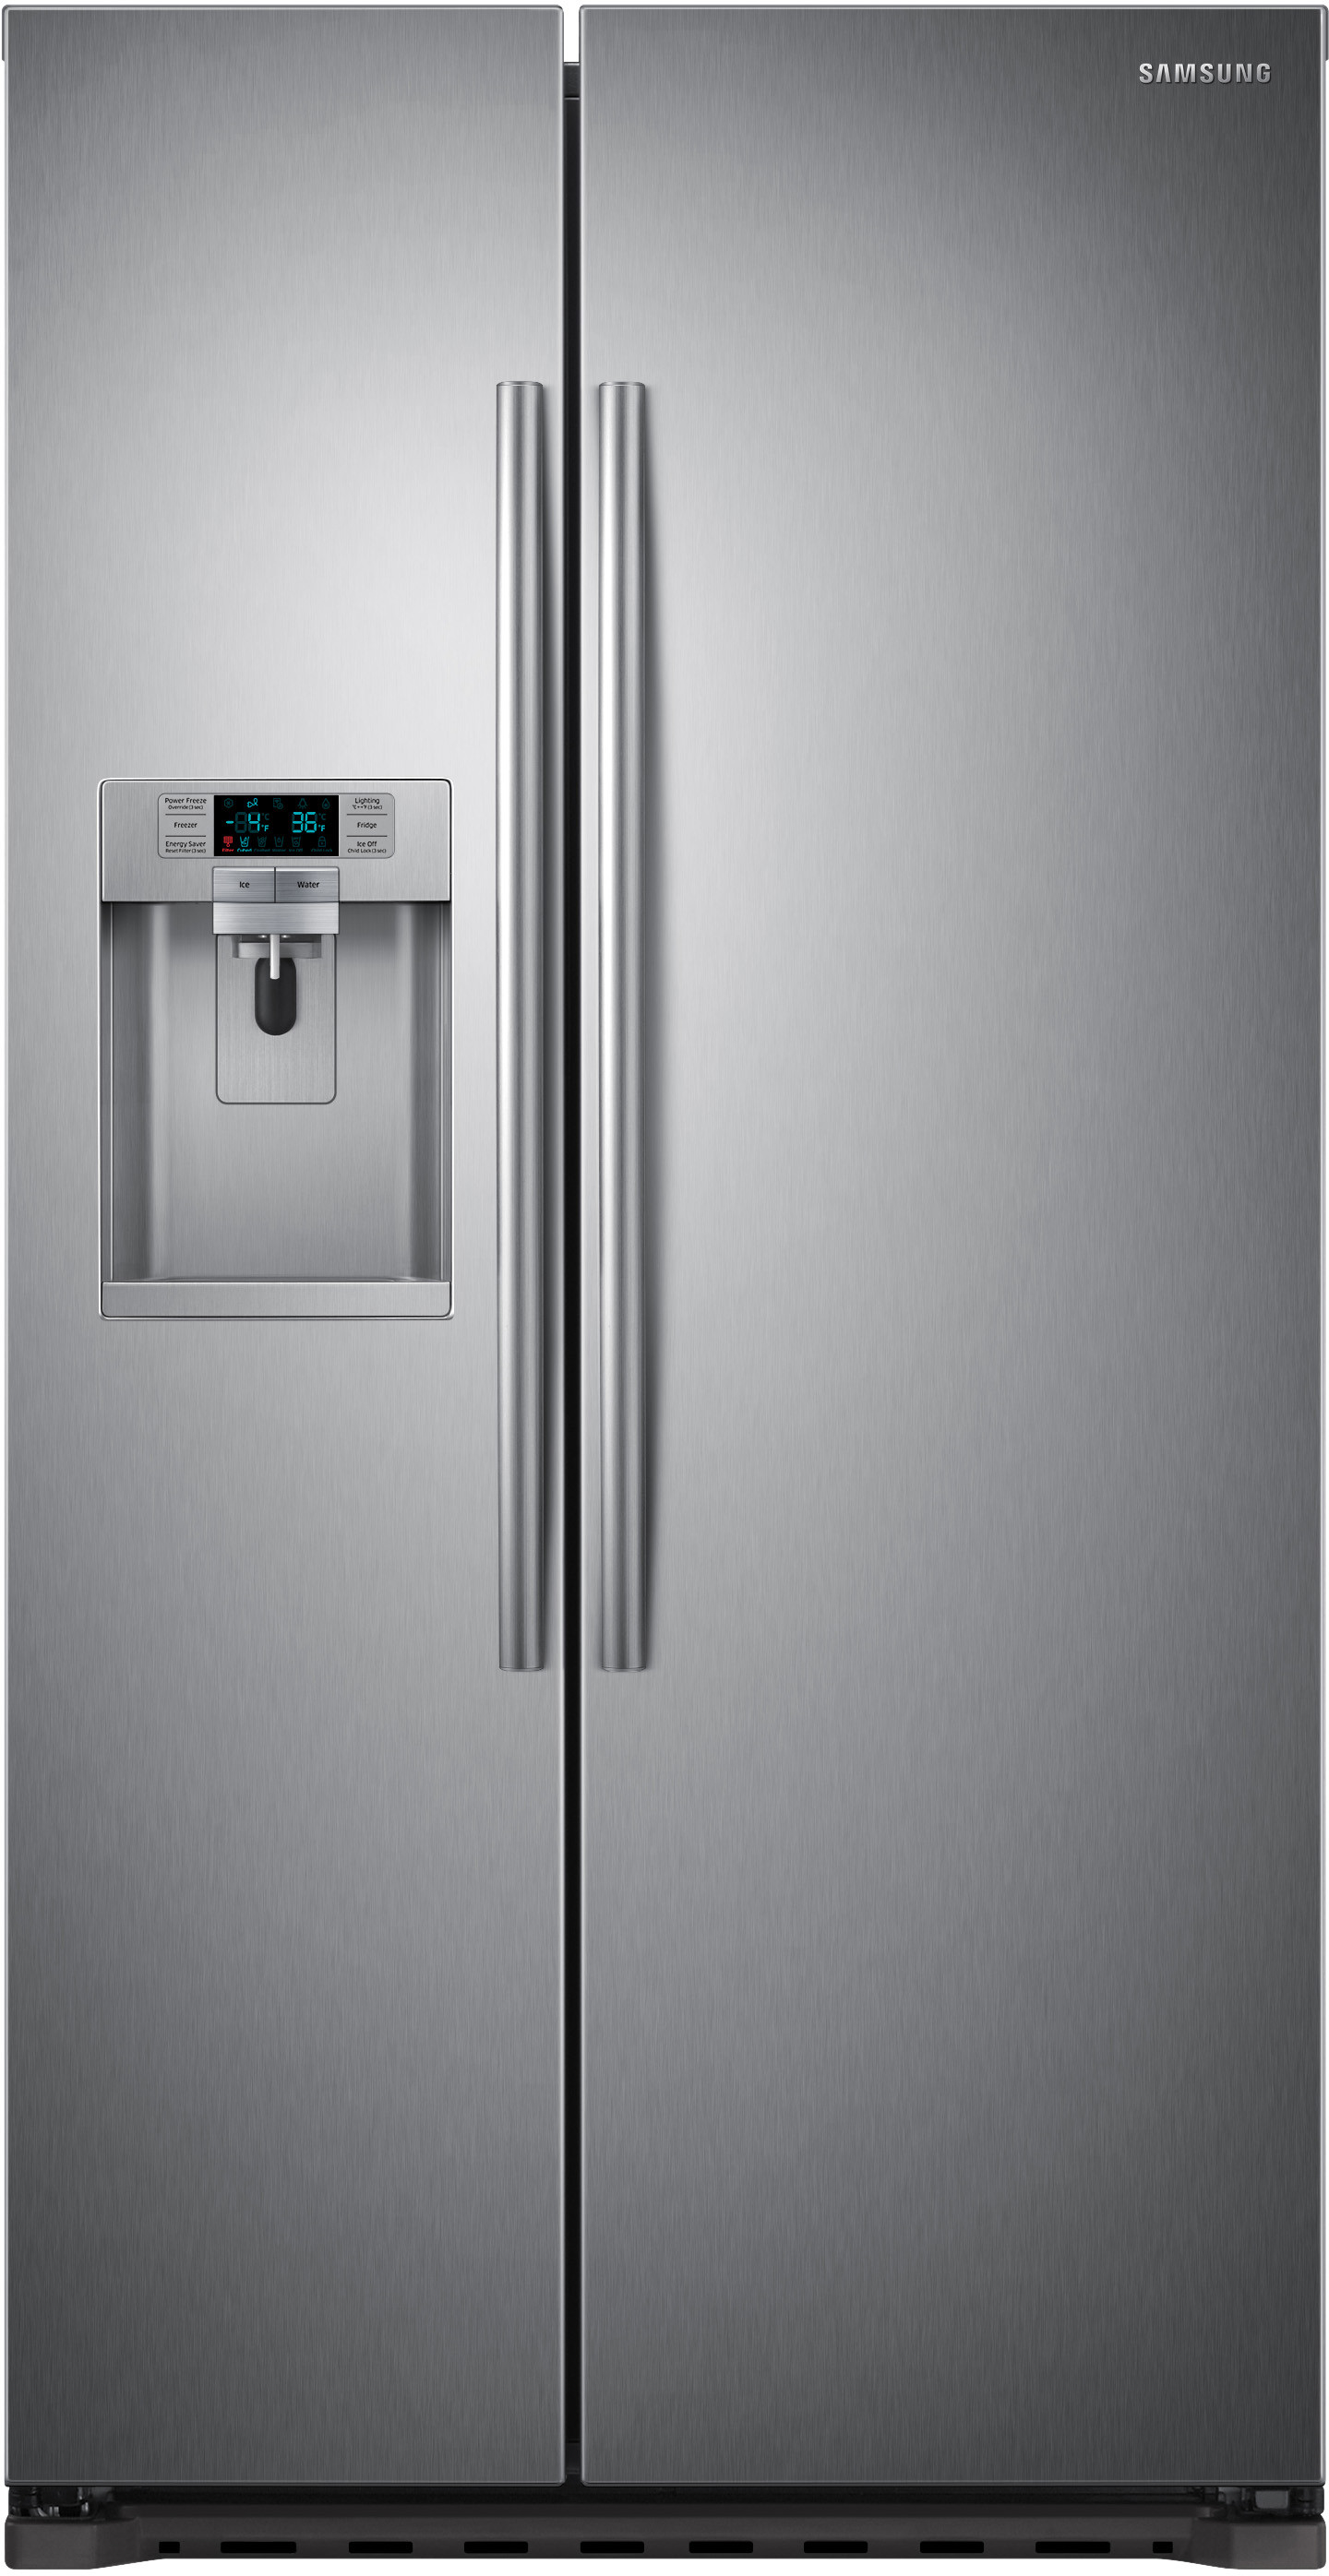 Samsung Rs22hdhpnsr 36 Inch Counter Depth Side By Side Refrigerator With 22 3 Cu Ft Capacit Counter Depth Refrigerator Counter Depth Energy Star Refrigerator